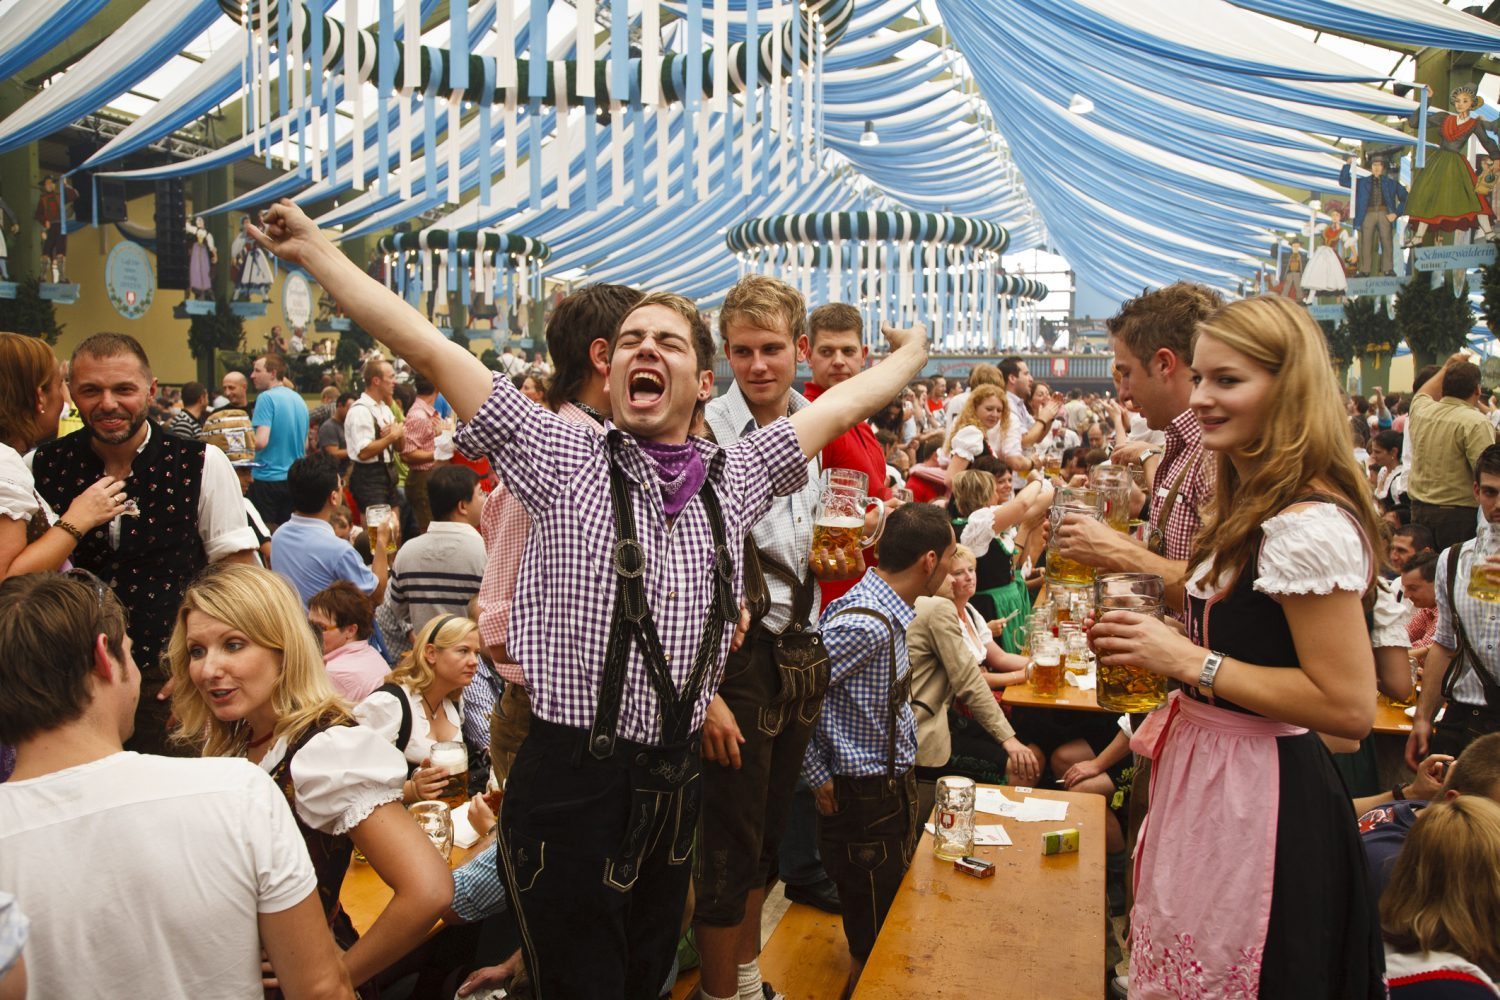 Heading to Oktoberfest? Here's all you need to know